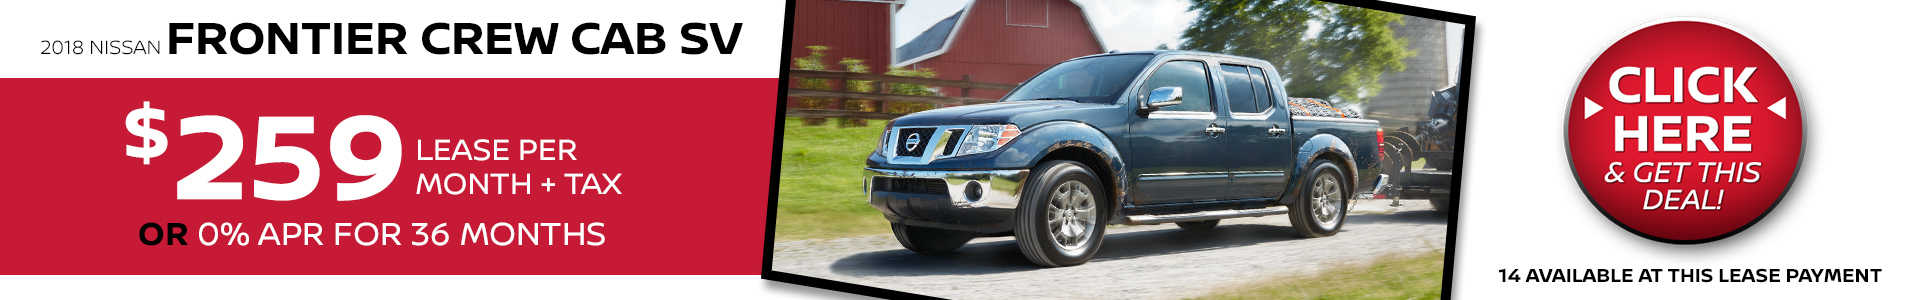 Mossy Nissan - Frontier $259 Lease